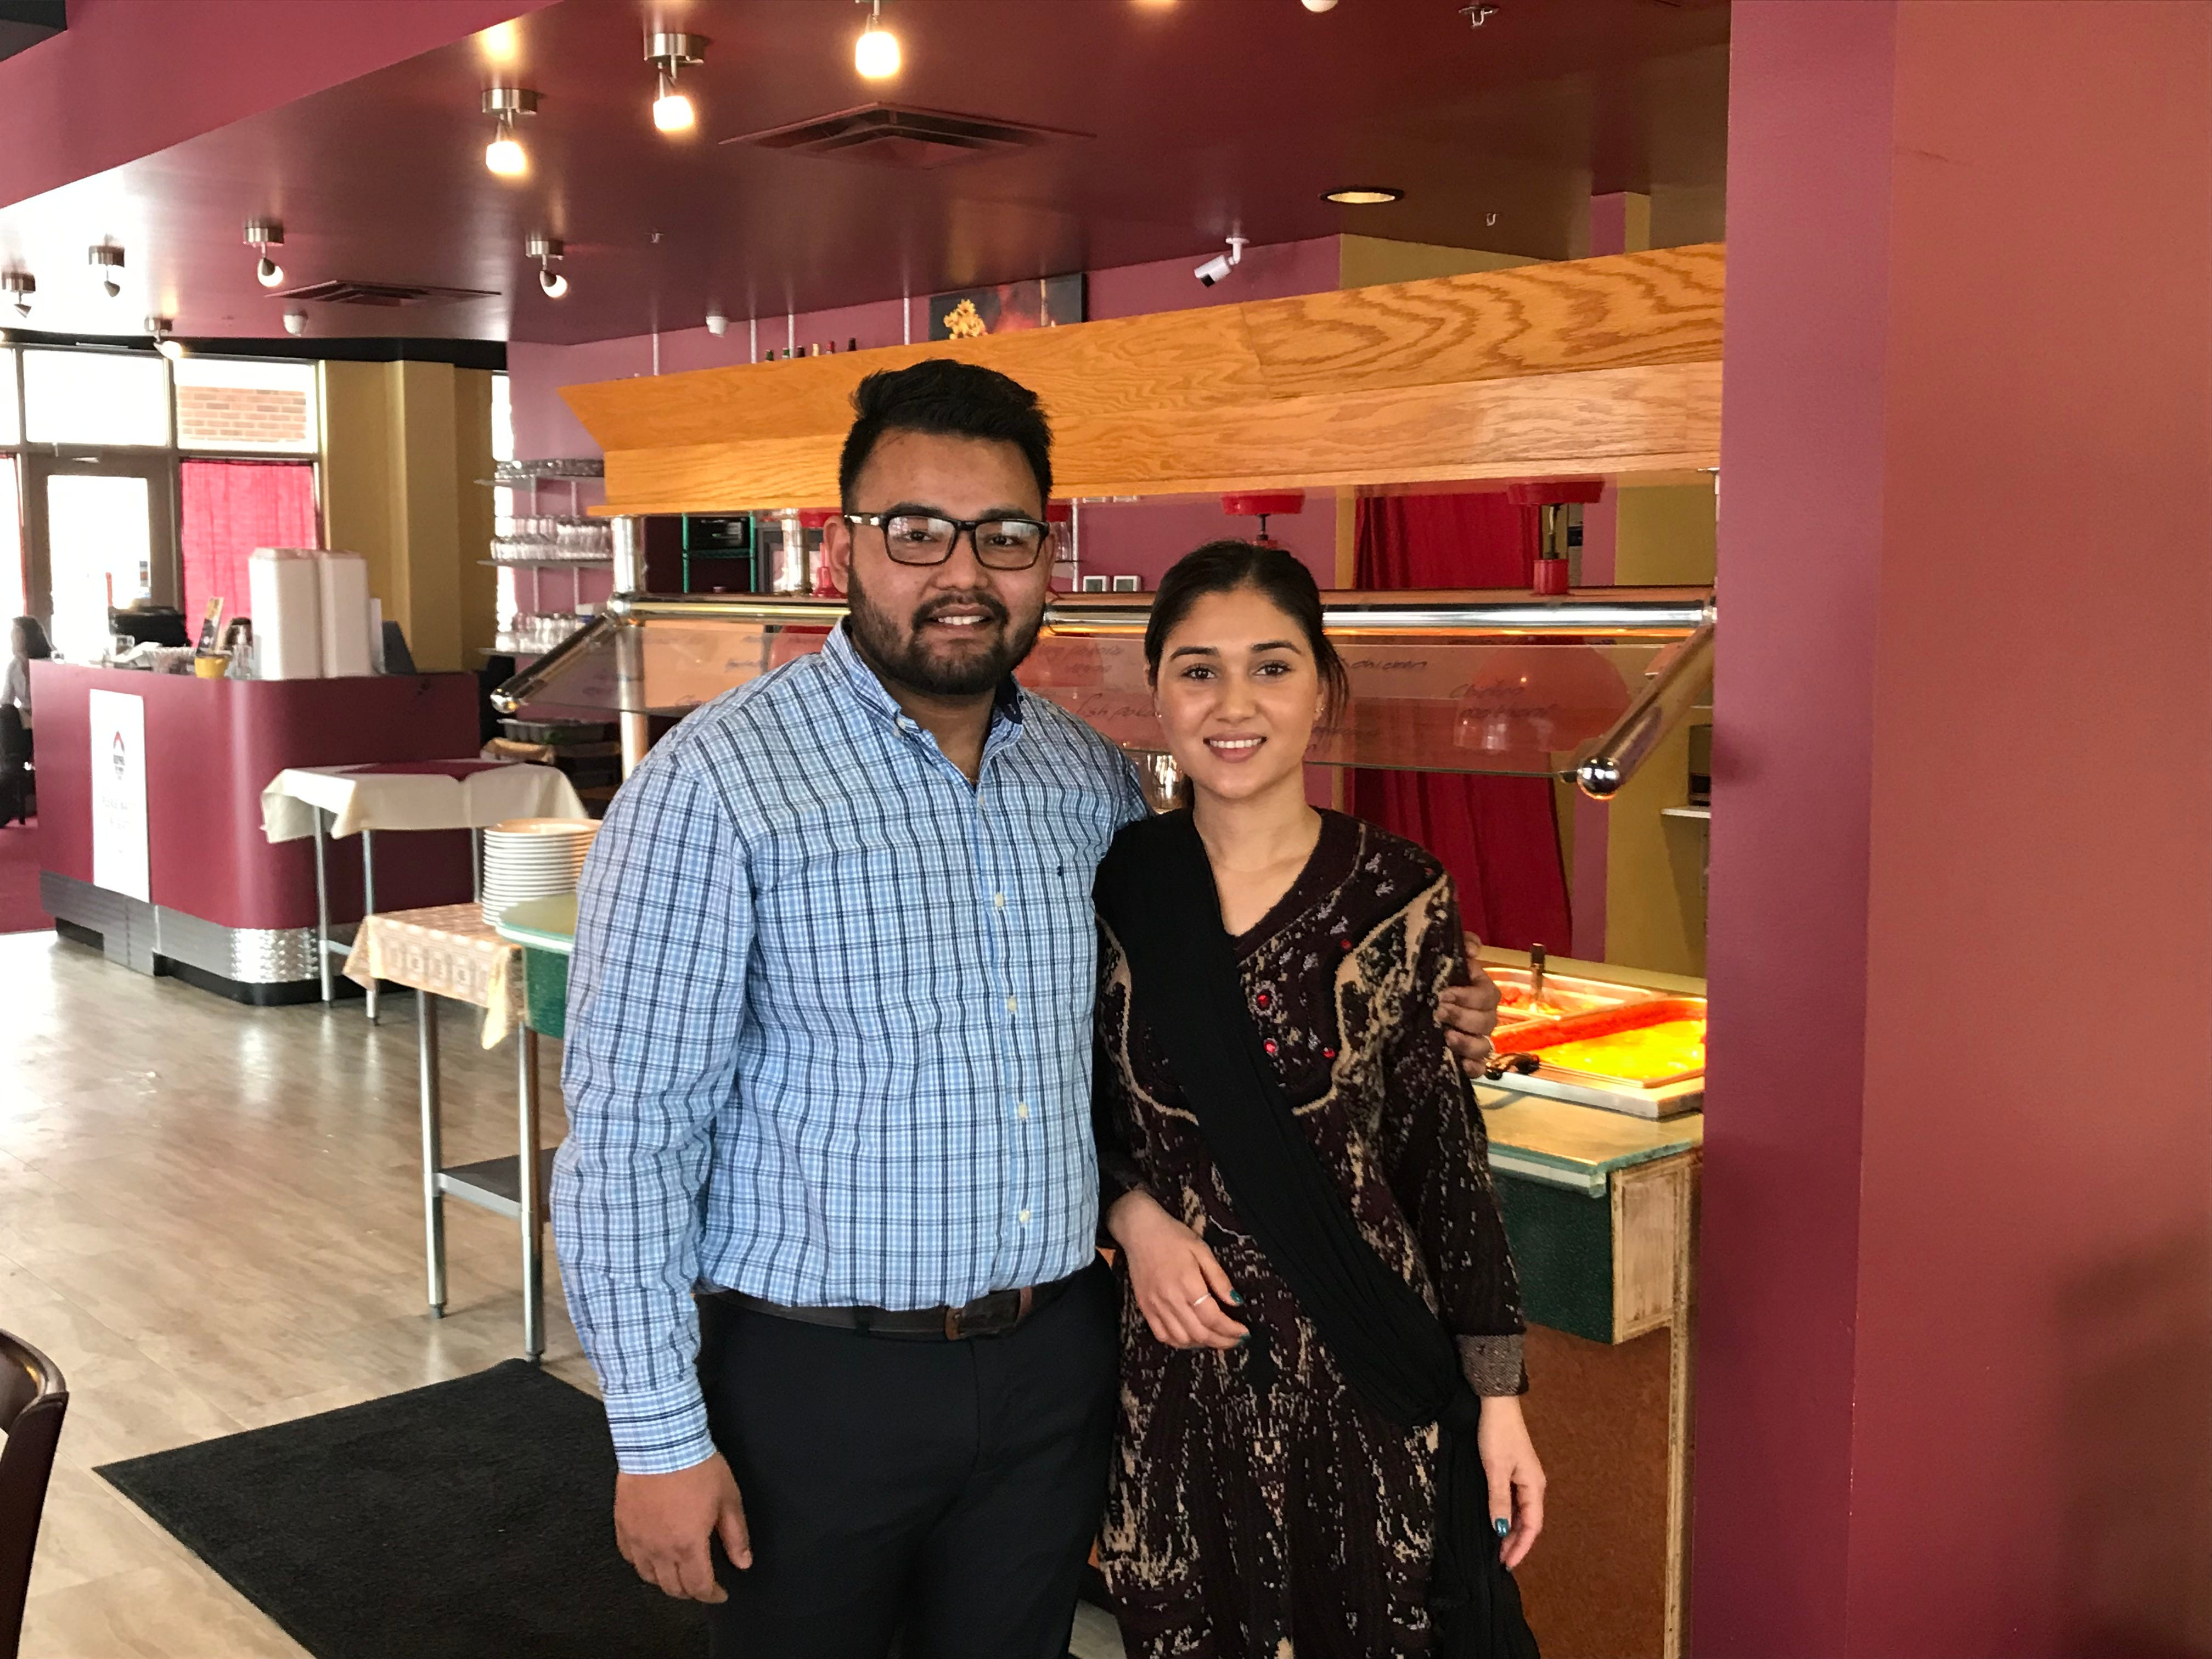 Nobin and Anisha Chuhan are the 22-year-old owners of Royal of India.